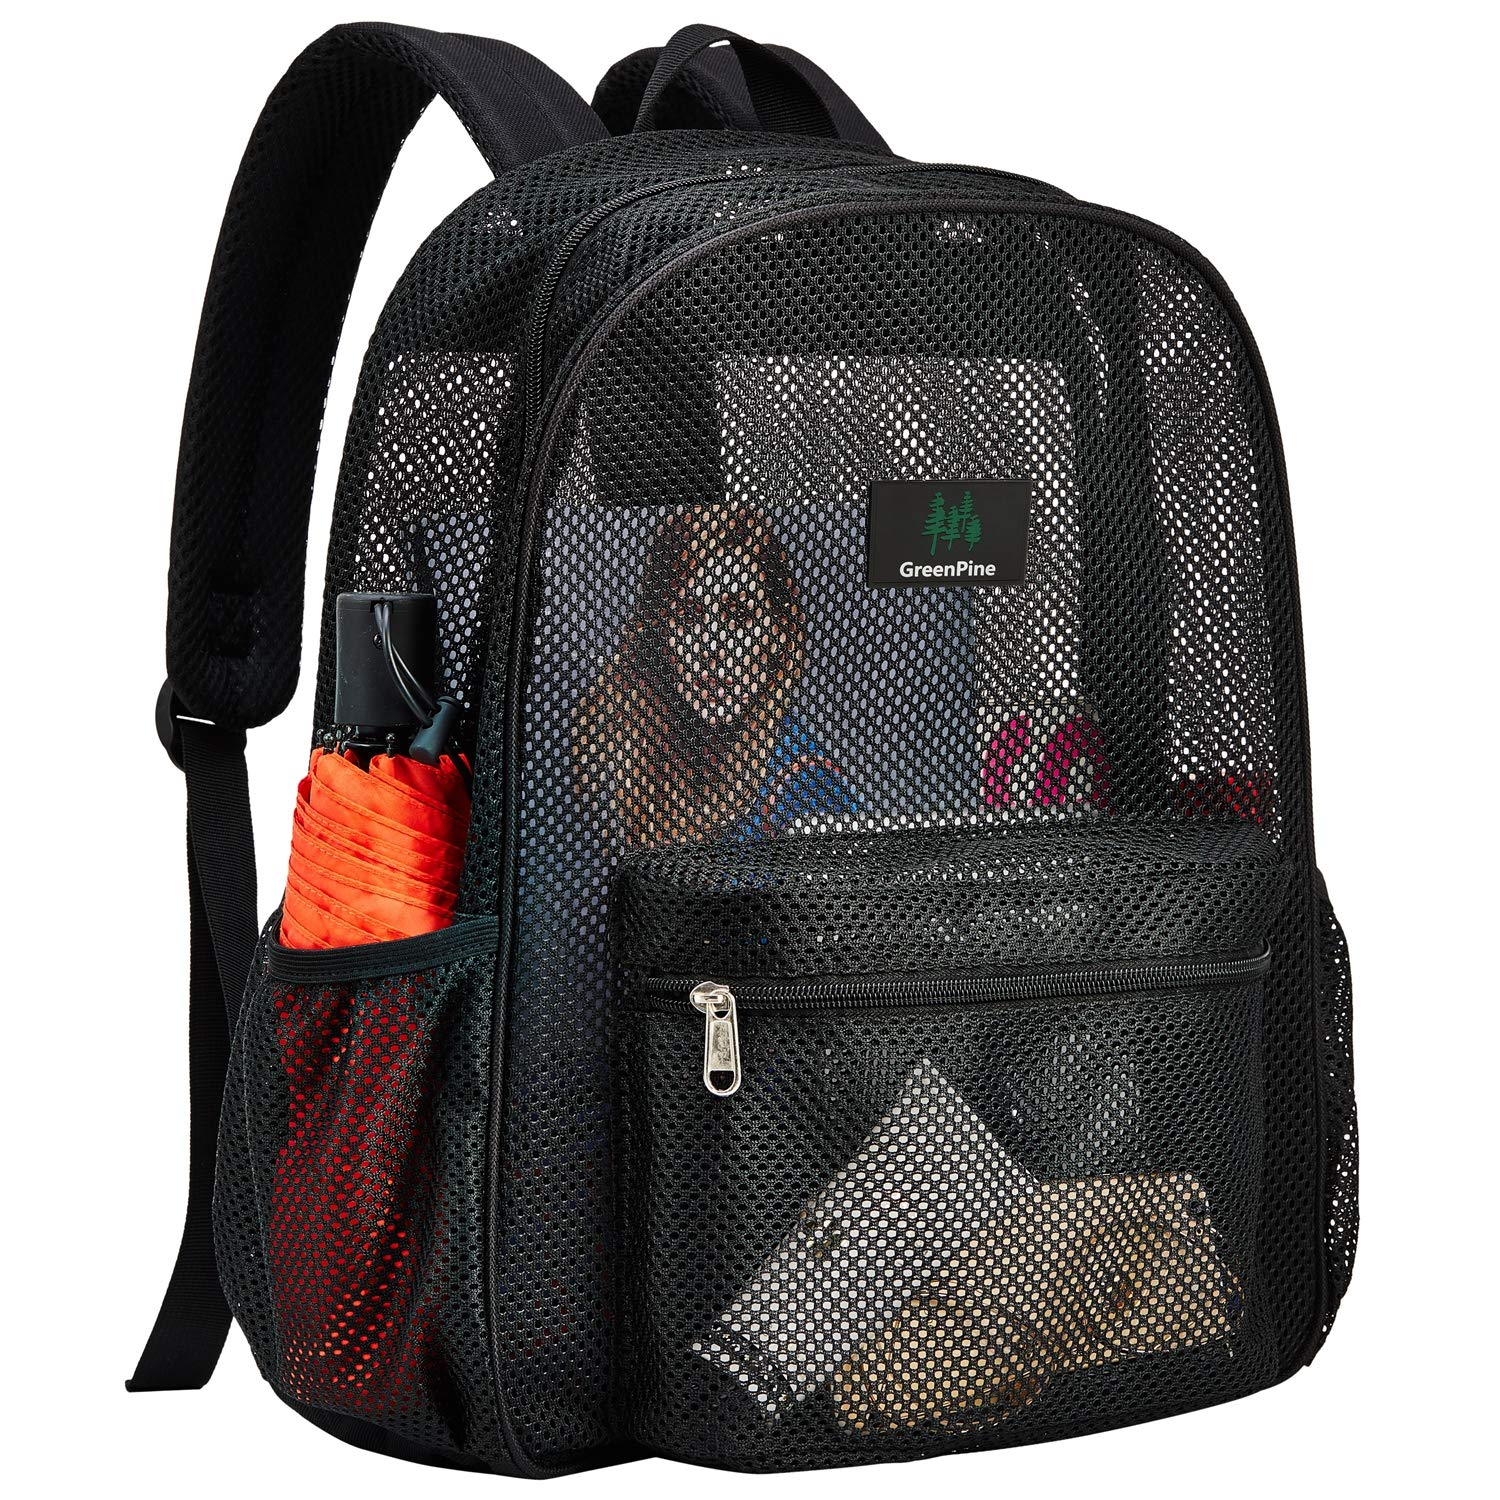 Outdoor Sports See Through College Student Backpack with Padded Shoulder Straps for Commuting Beach Heavy Duty Semi-Transparent Mesh Backpack Swimming Travel